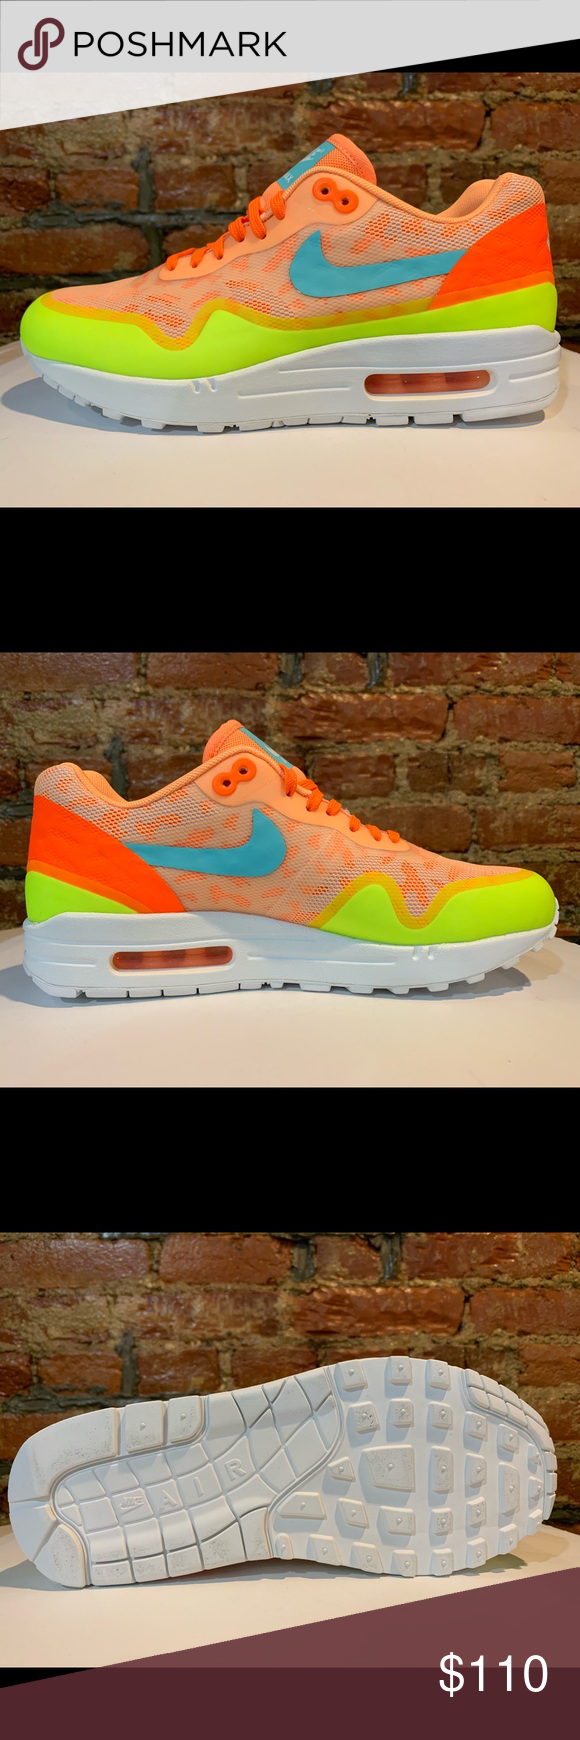 "new arrival fa80e f4d30 NEW N ike Air Max 1 NS ""Peach Cream"" Brand new pair of Women s Nike Air Max  1 NS Peach Cream Size 9 (844982-800) The shoes are brand new but do not ..."